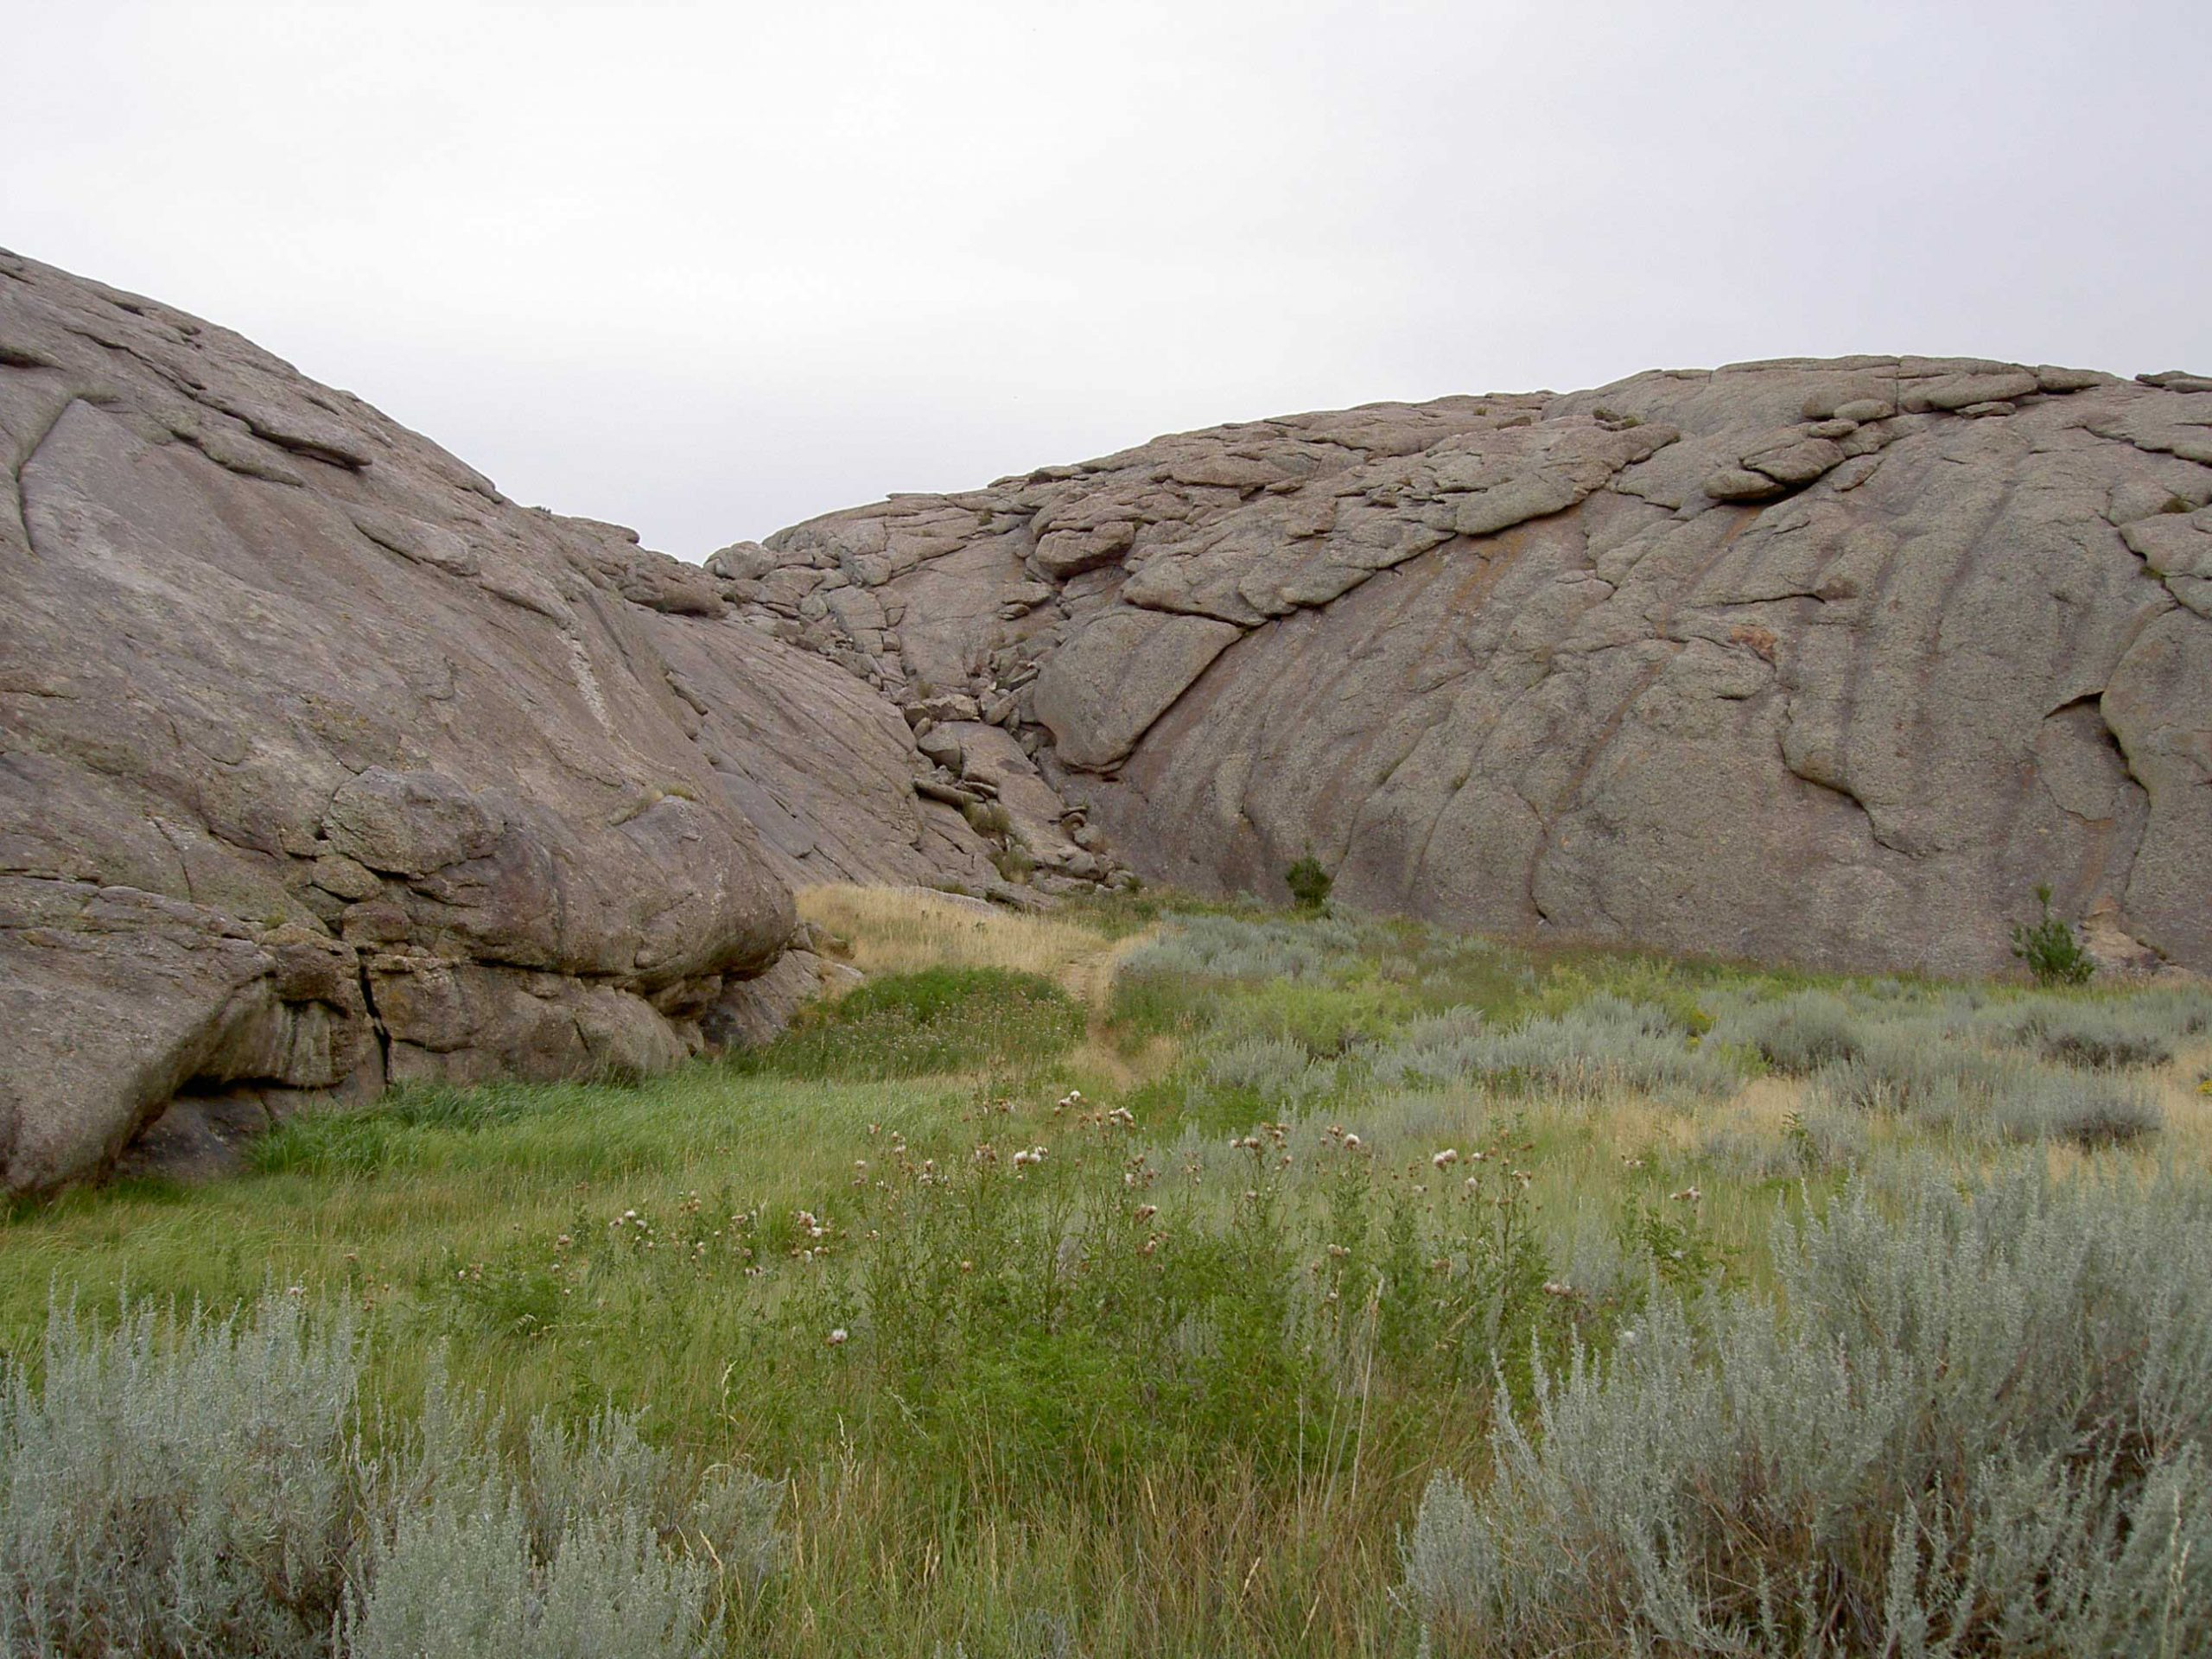 Independence Rock in Wyoming